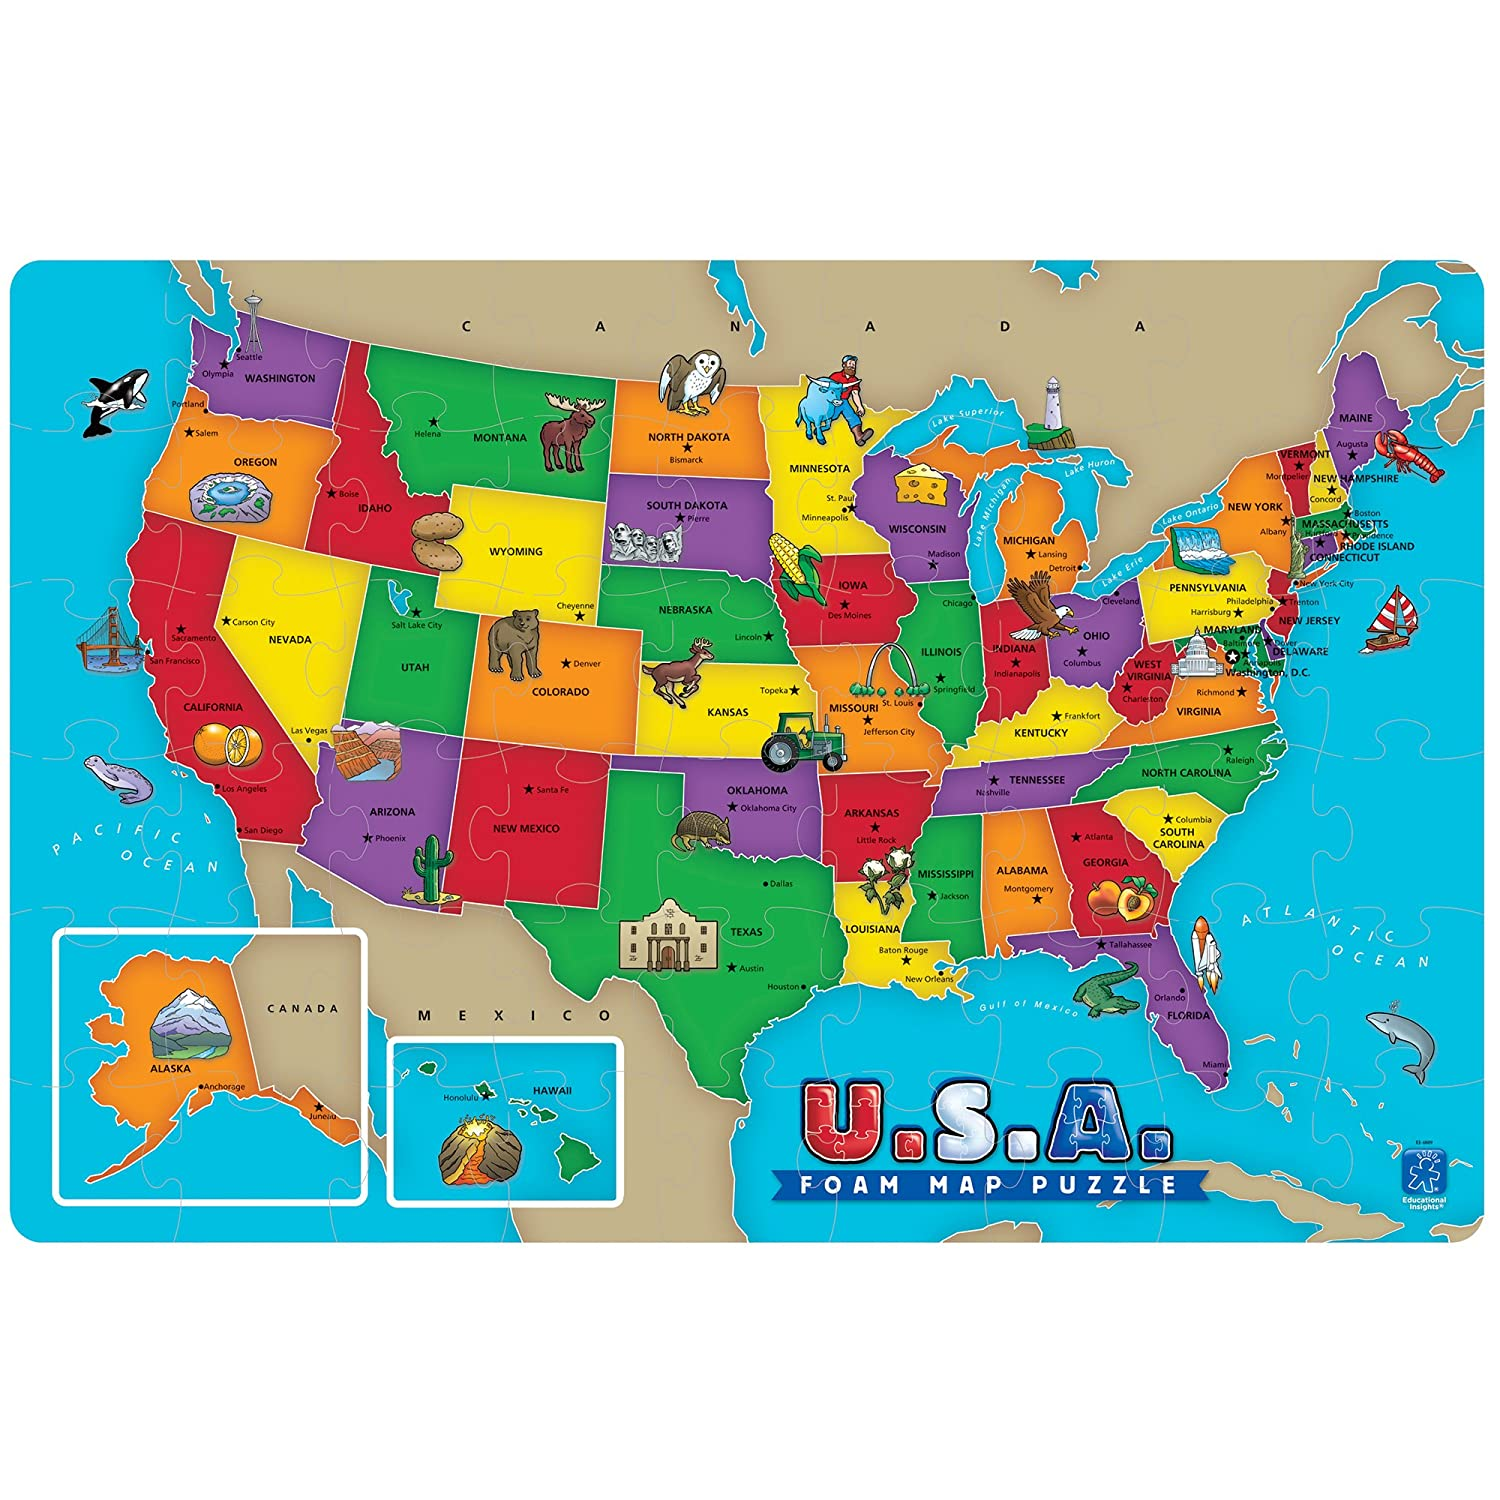 Amazoncom 54 Piece USA Foam Map Puzzle Toys Games